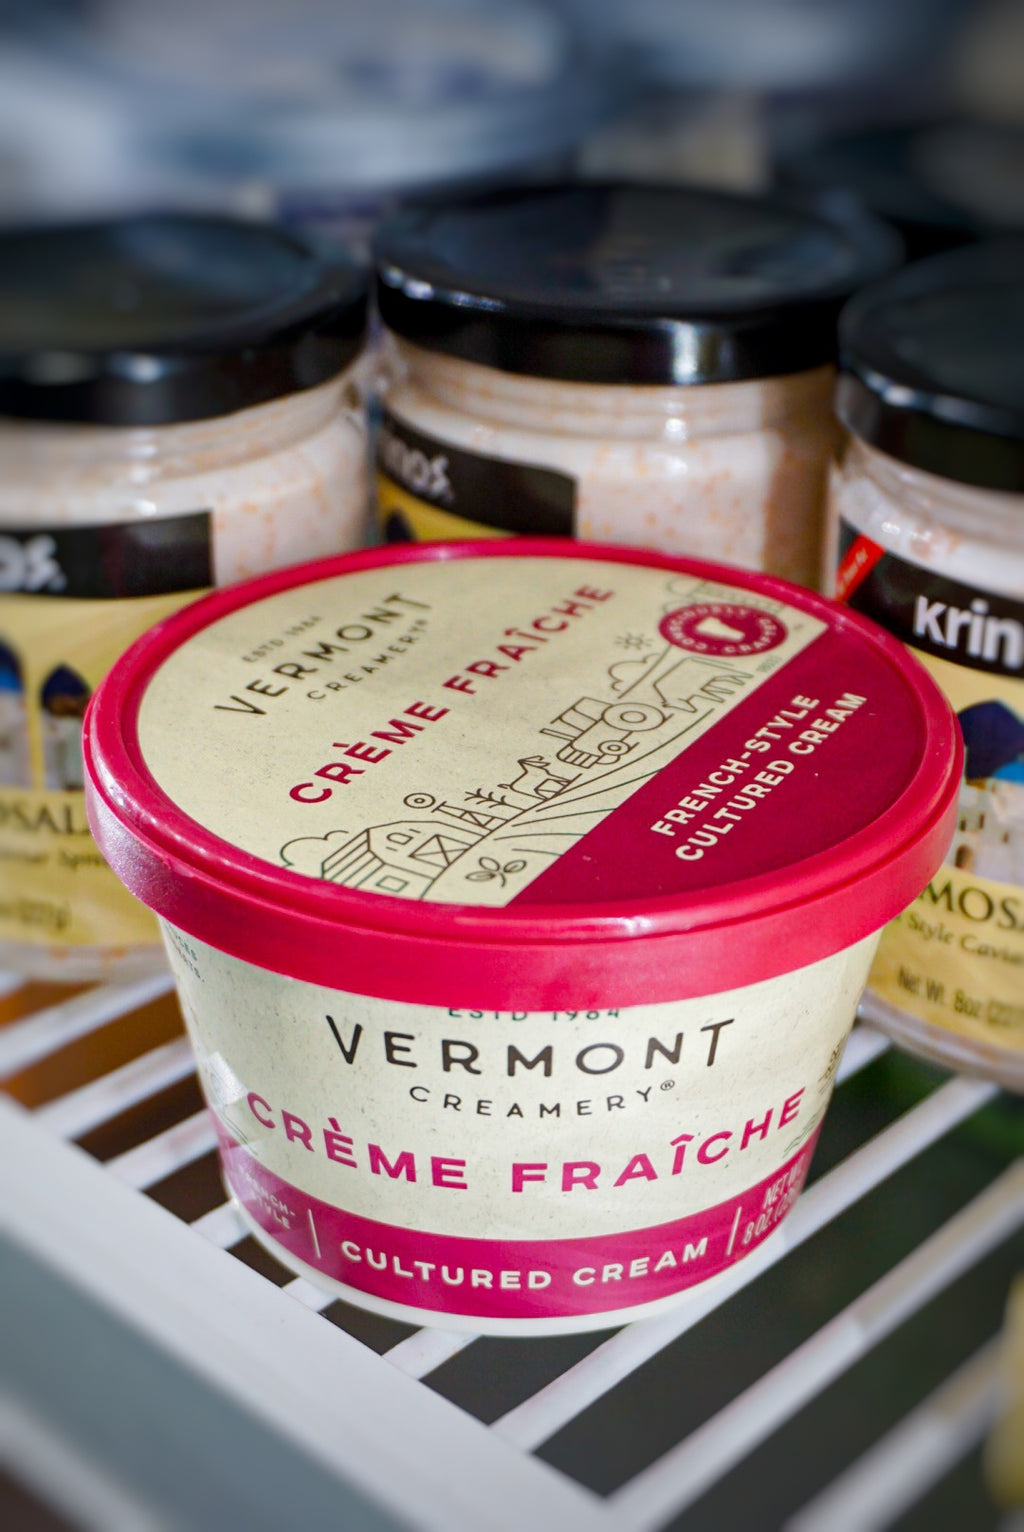 Vermont Creamery Creme Fraiche (French-Style Cultured Cream)